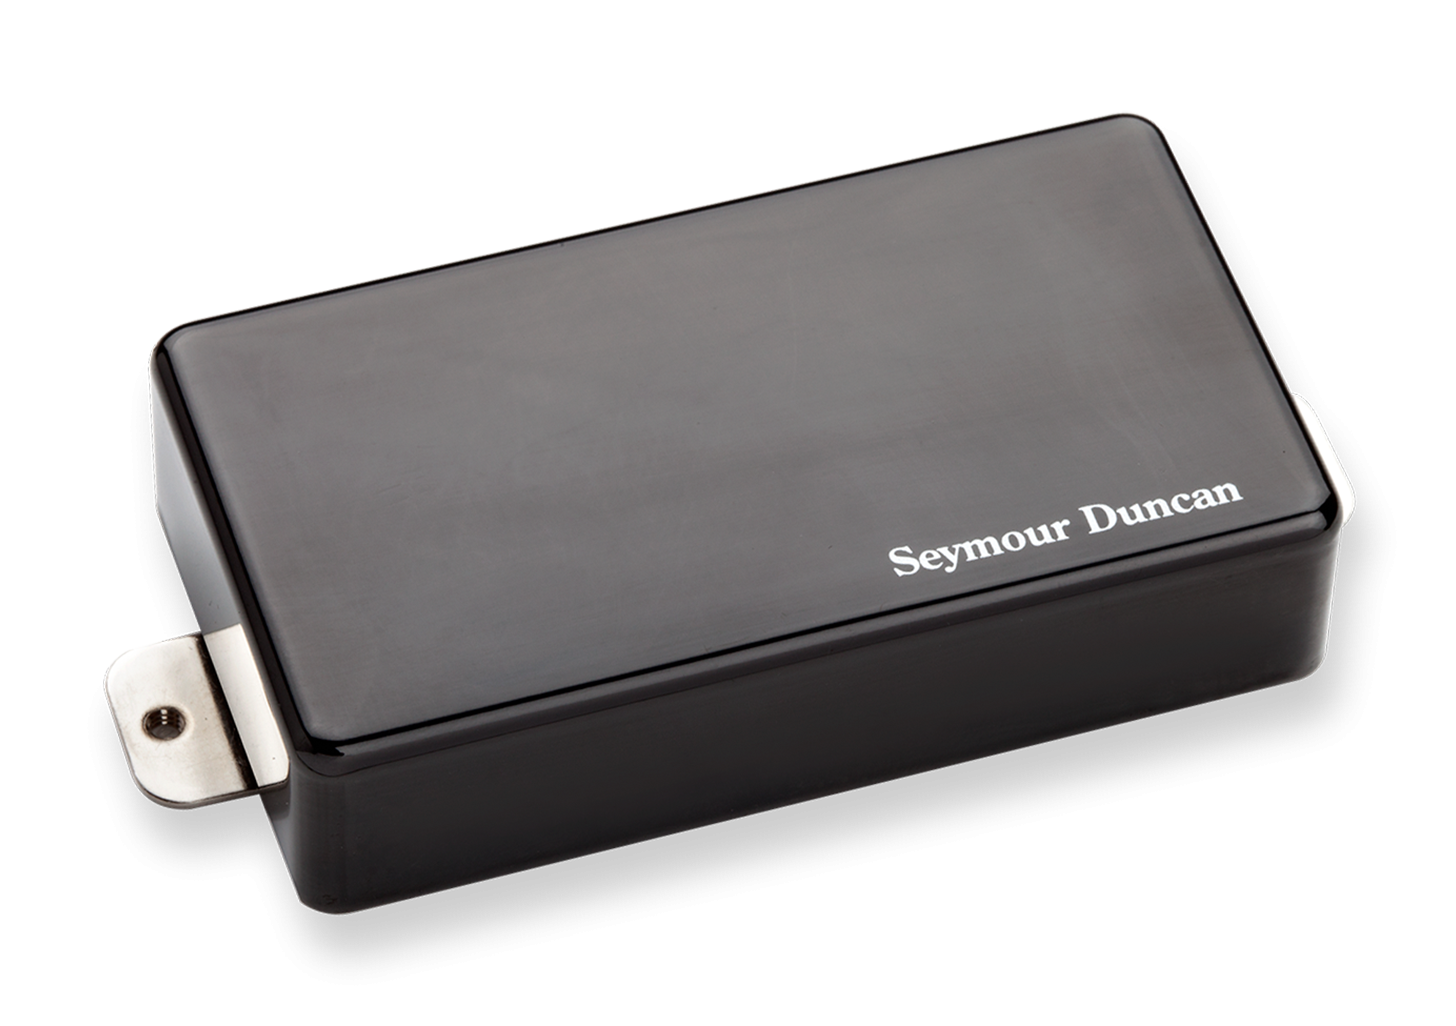 Seymour Duncan Blackouts AHB-1N Neck Black Chrome